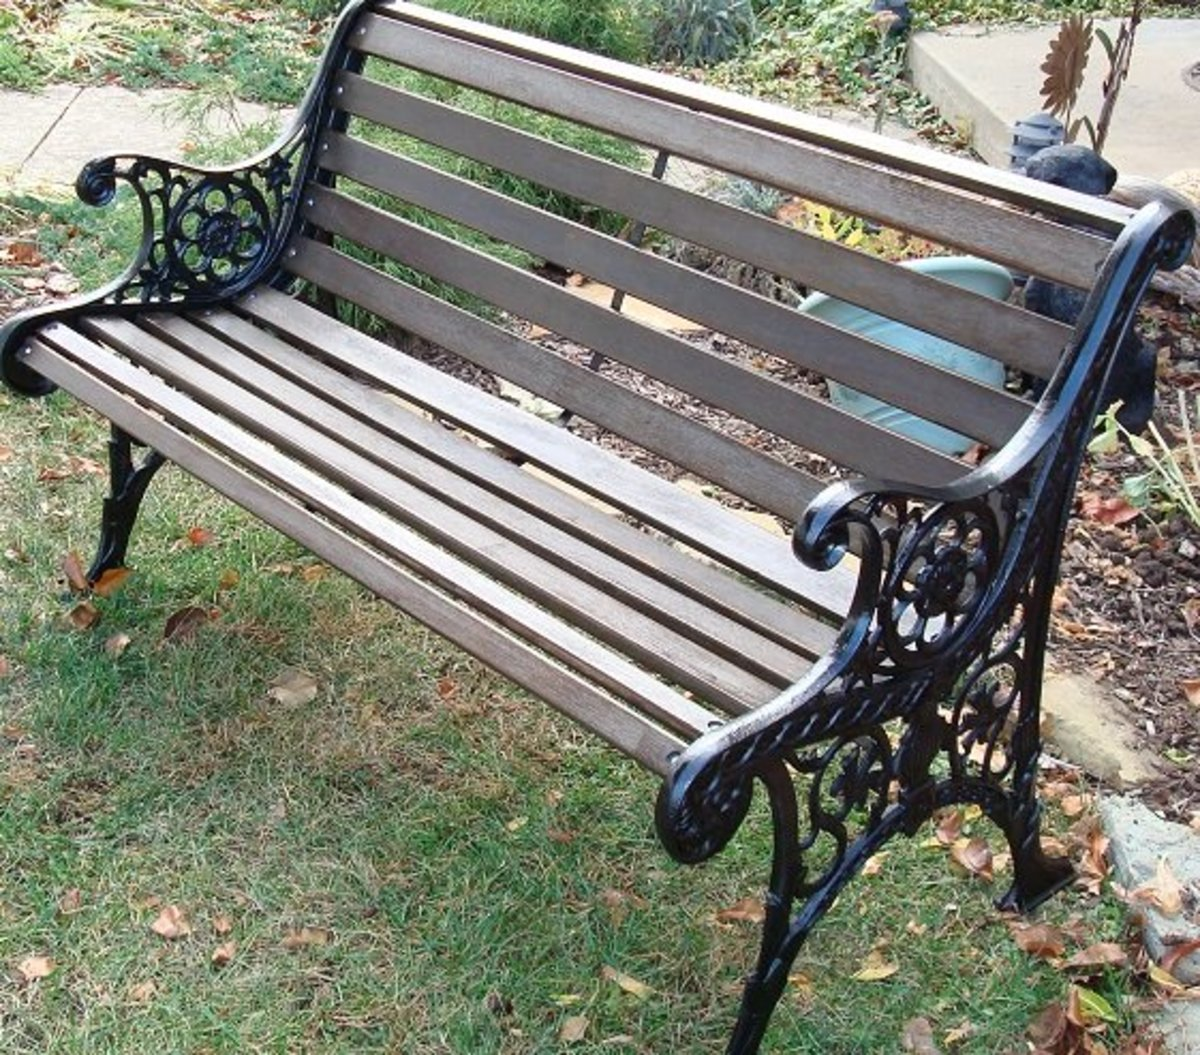 How to Restore a Wood and Cast Iron Garden Bench